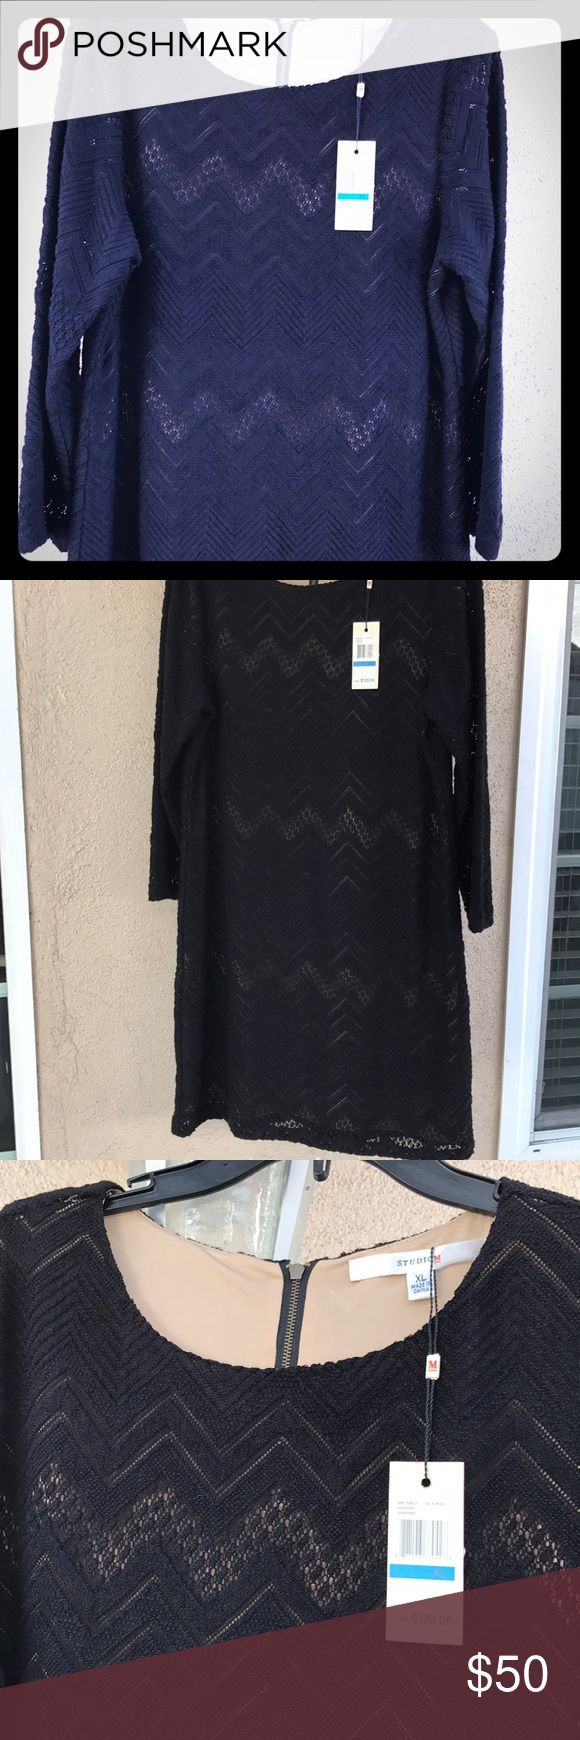 💃🏼💃🏼 Flattering Black Chevron Lace Dress 💃🏼 Beautiful ❤️Studio M women's XL Black Midi Lace Dress.Great for any occasion.Fully lined New with tags..🖤It's more Beautiful in person.. M.STUDIO Dresses Midi